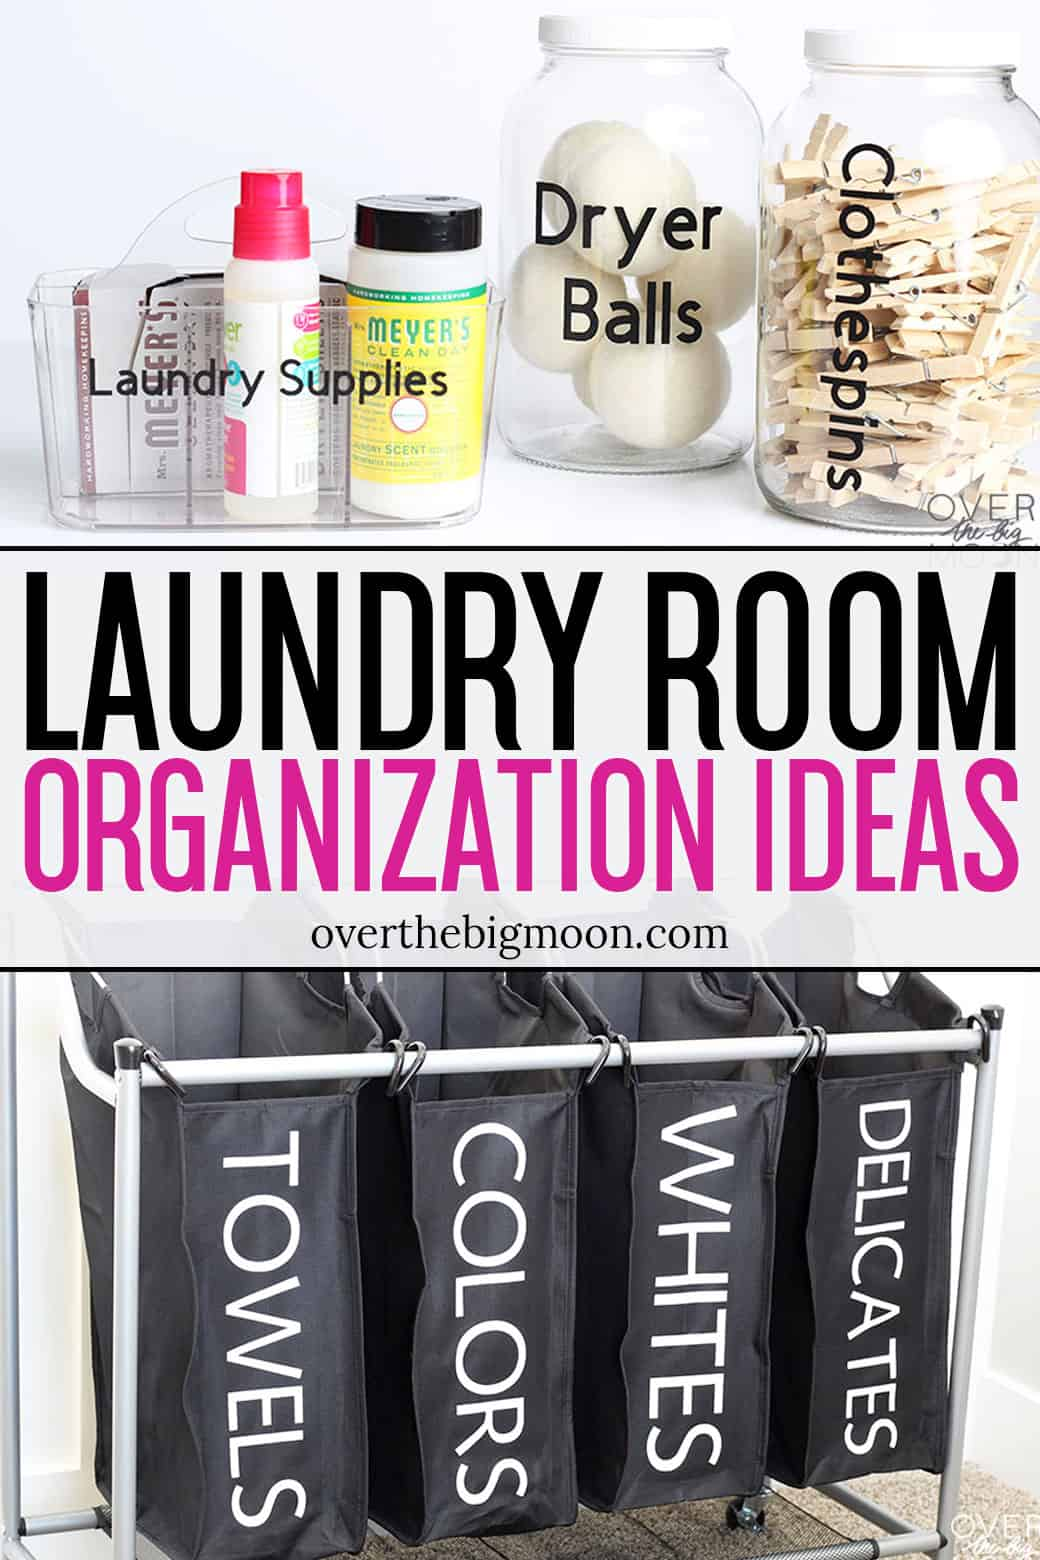 These Laundry Room Organization Ideas are a super easy to way to make your laundry room more functional, as well as cute! I'm sharing tutorials for a Laundry Sorter and Laundry Containers! From overthebigmoon.com!